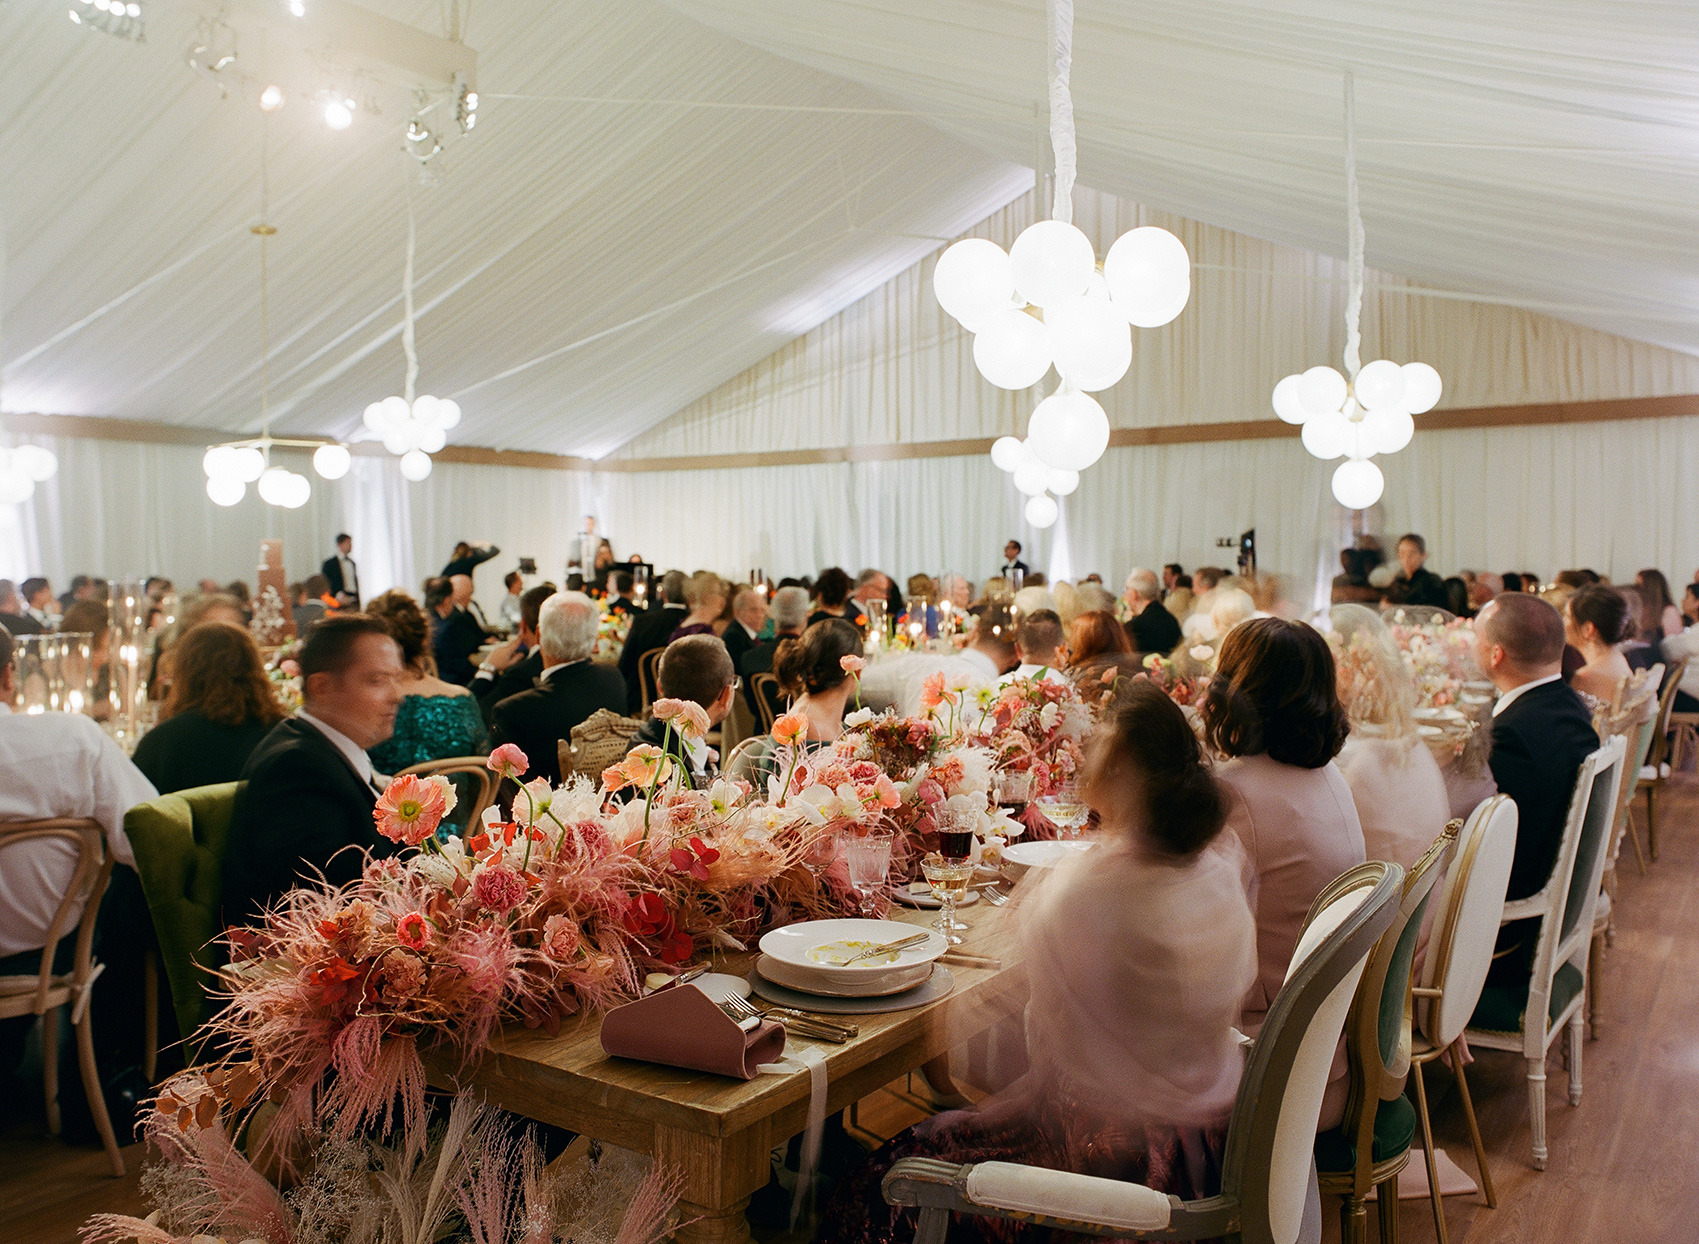 guests sitting at wooden tables with floral and feather garland centerpieces